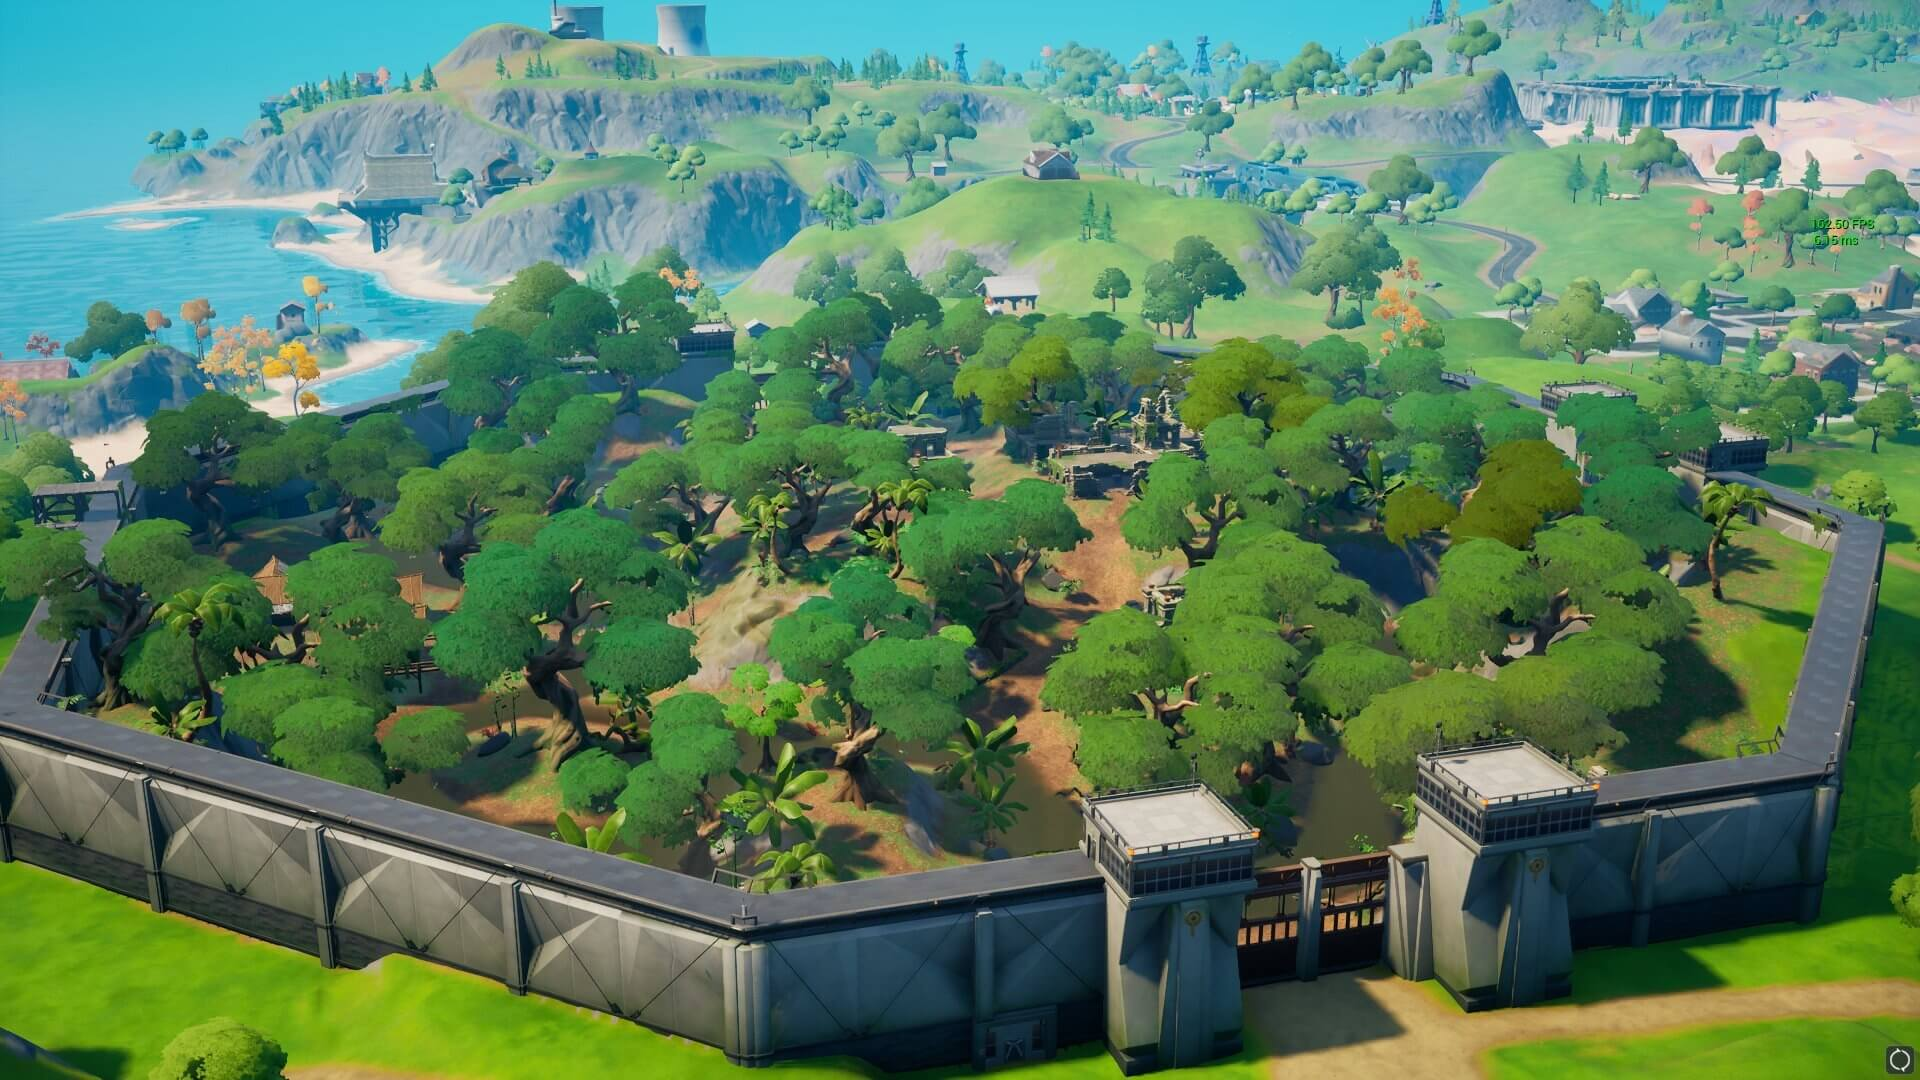 Fortnite Season 5 Is Live Map Changes New Weapons More Patch Notes That's why there are new maps that catch. fortnite season 5 is live map changes